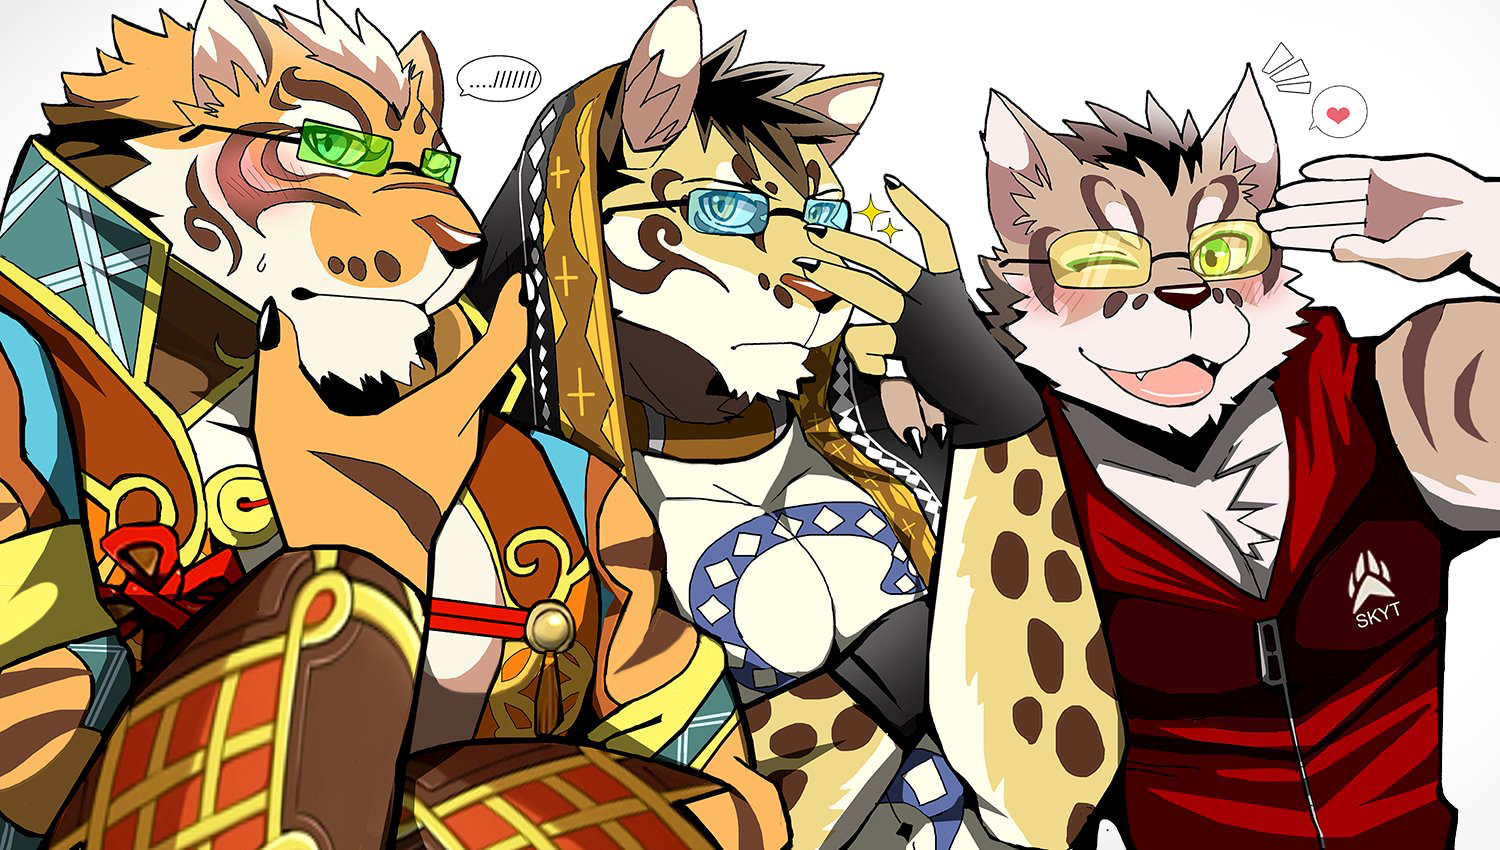 Nekojishi | Furry art, Anthro furry, Male furry